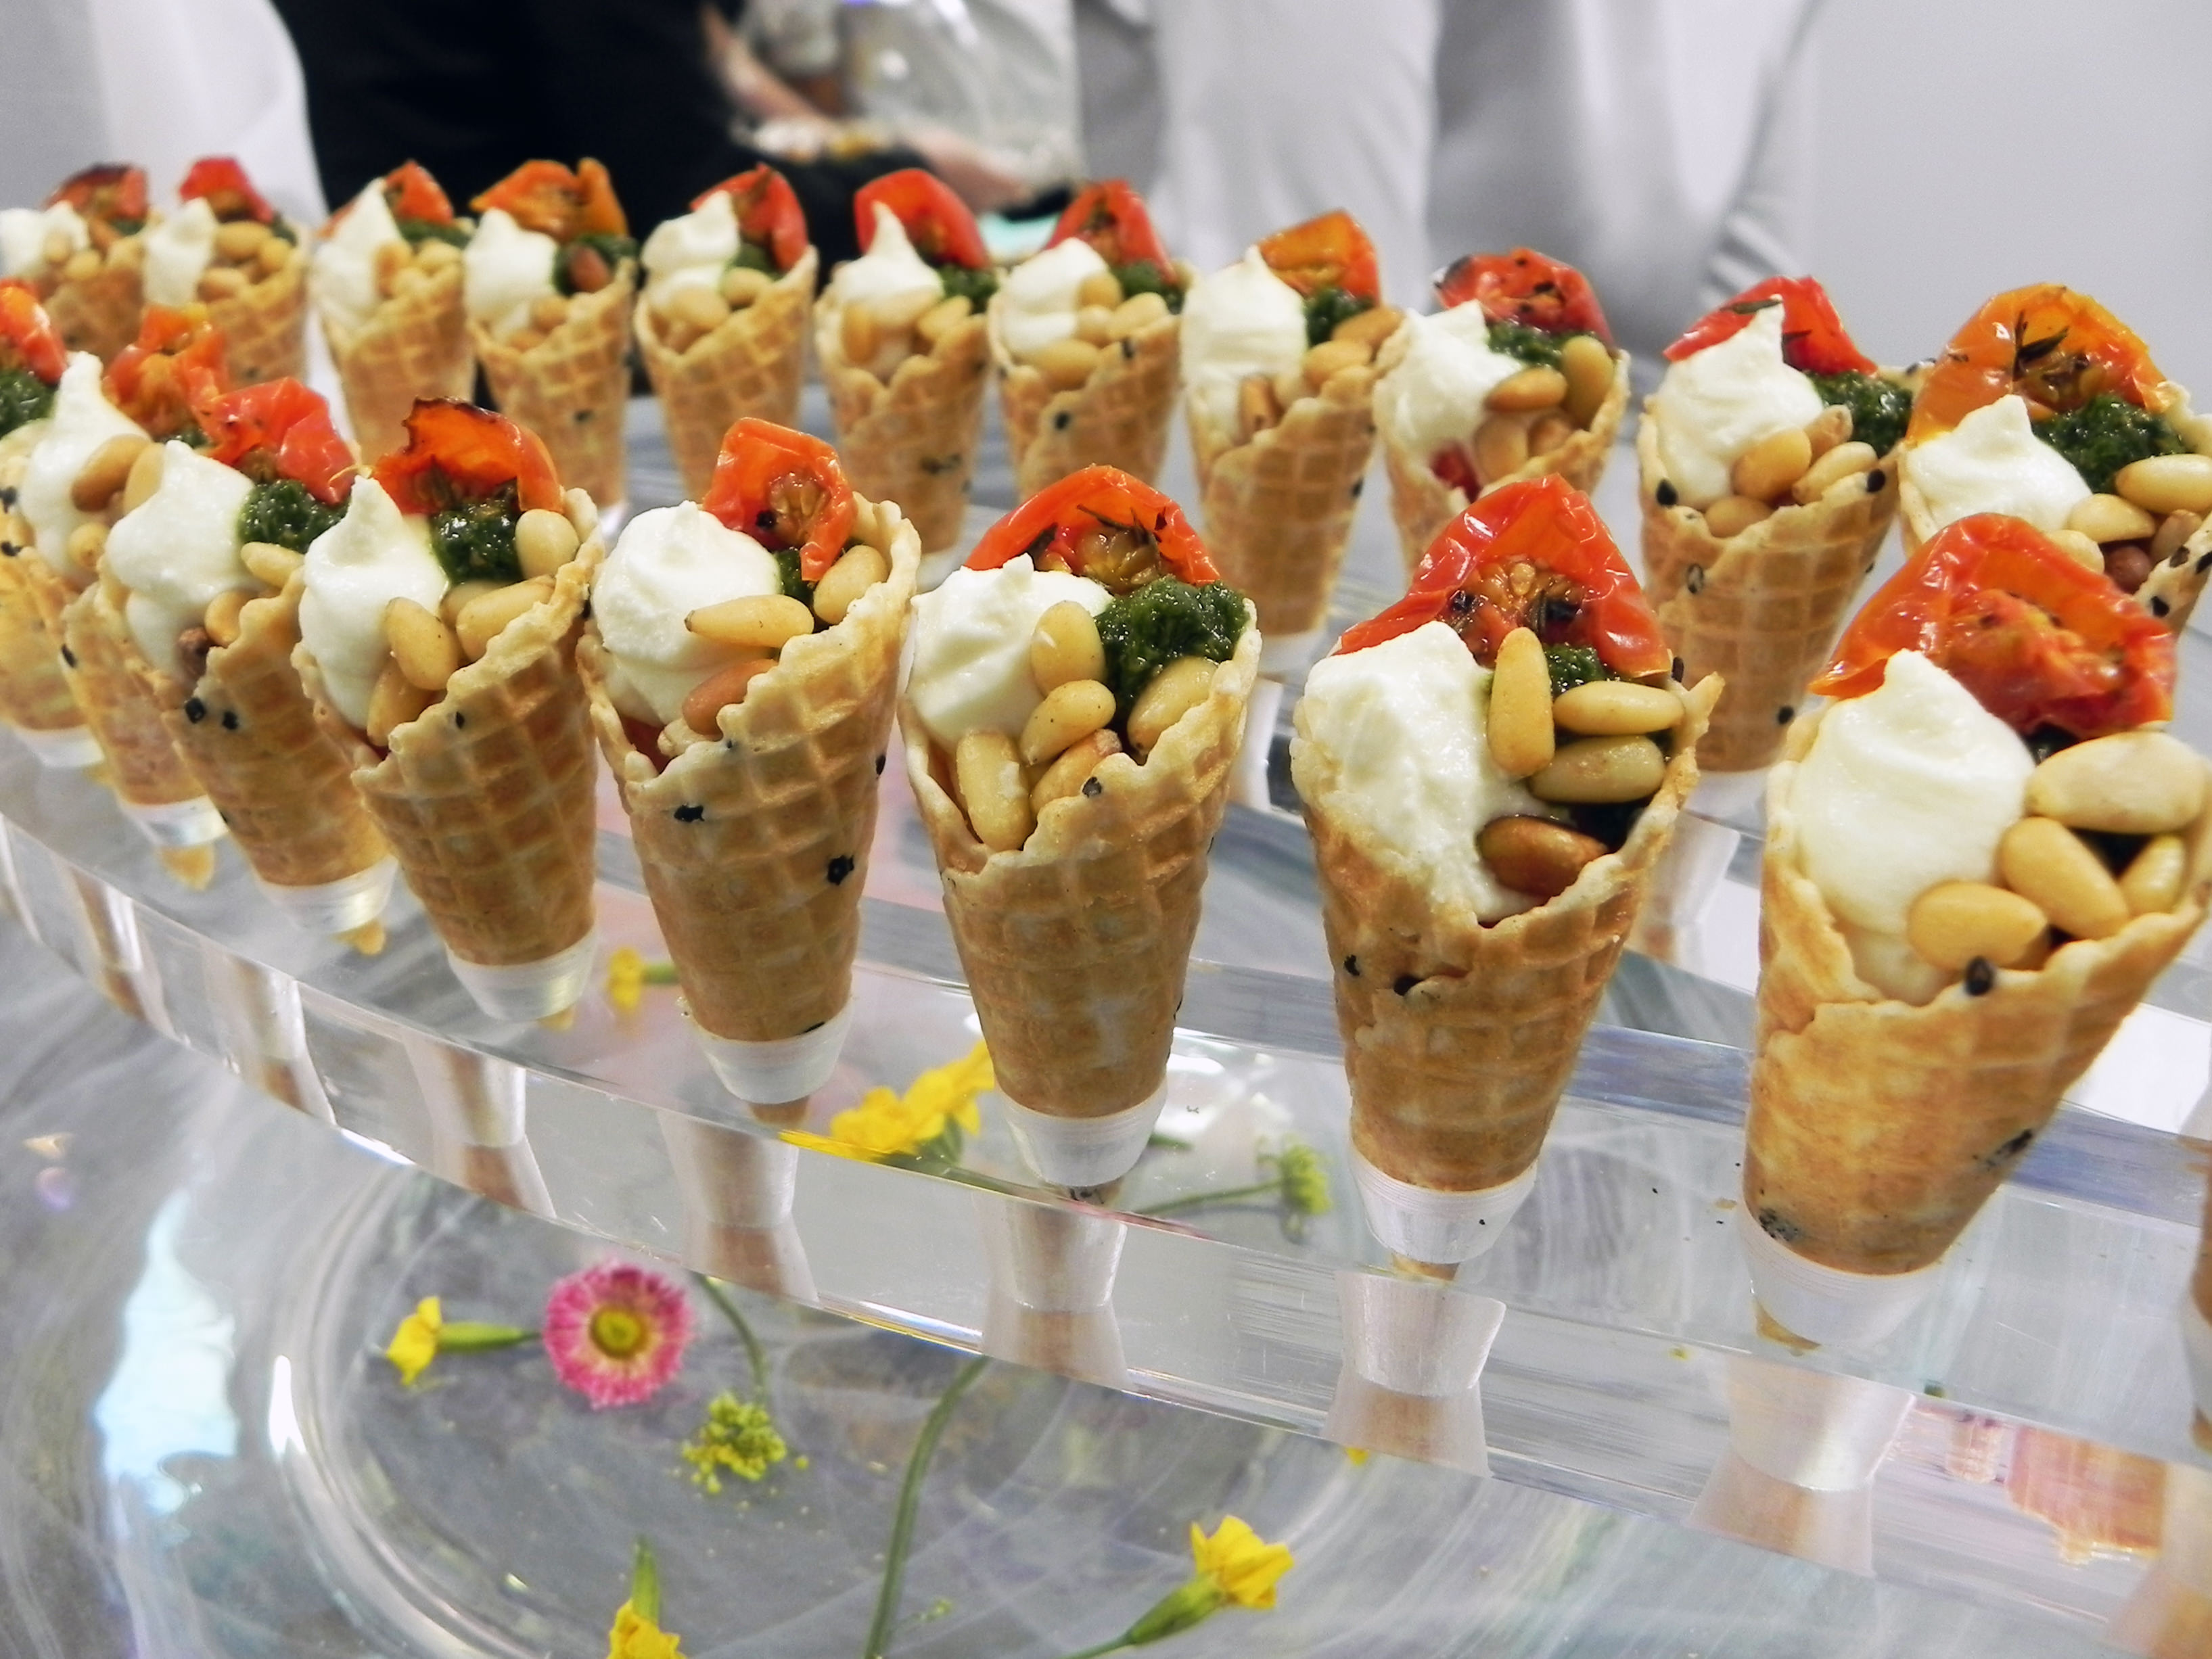 Caprini Goat's Cheese Canapes at Victoria Gate Launch